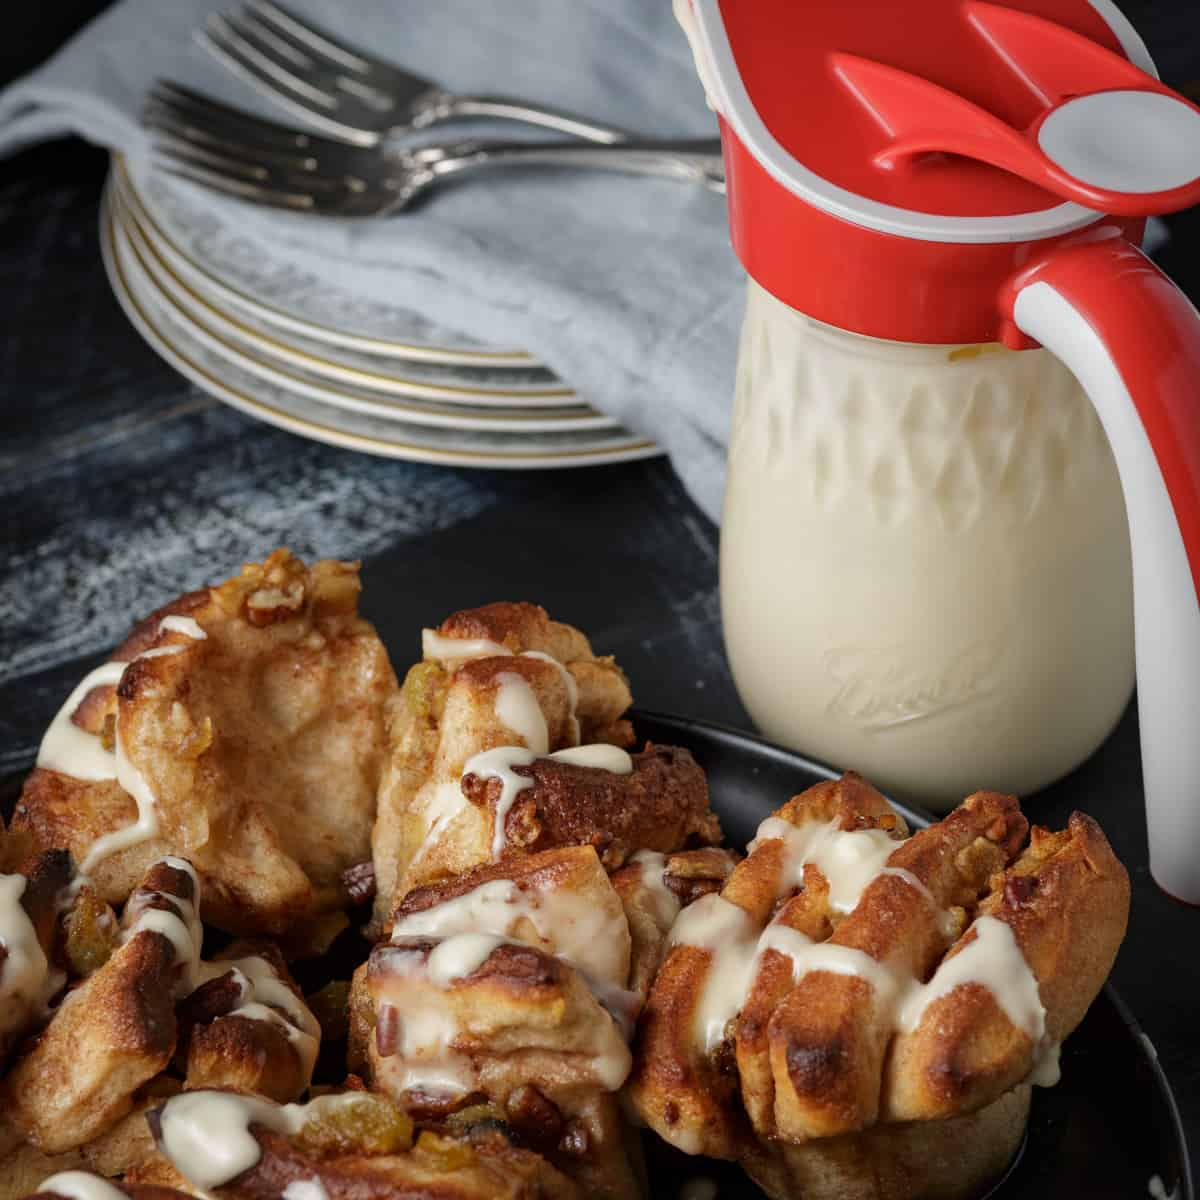 A platter of apple cinnamon rolls with a pitcher of frosting